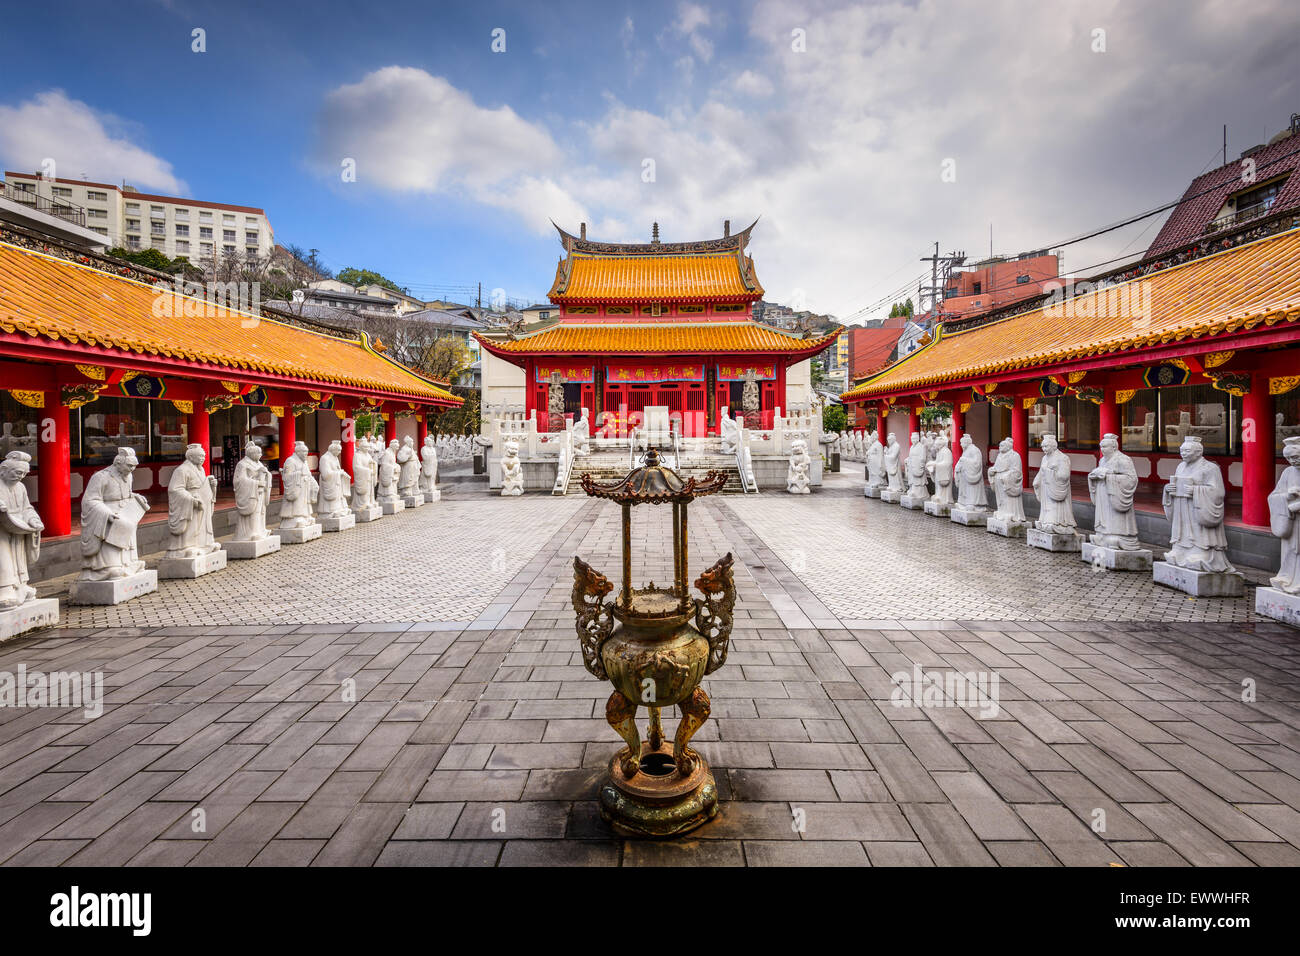 Nagasaki, Japan at Confucius Shrine. Stock Photo